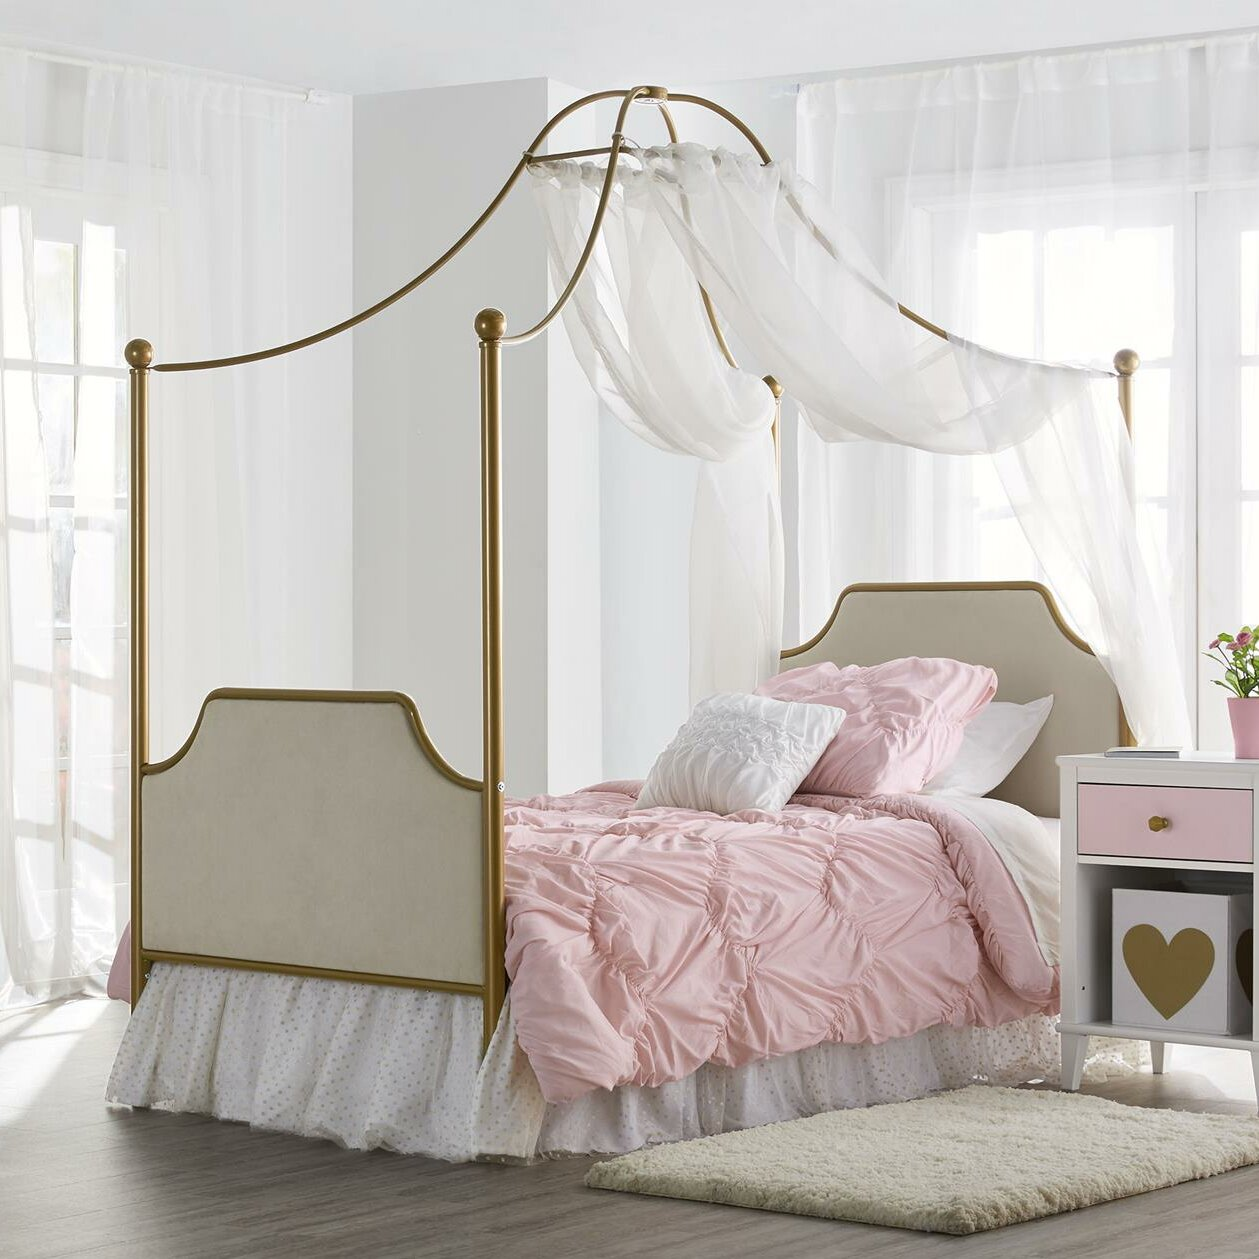 - August Twin Canopy Bed & Reviews Joss & Main